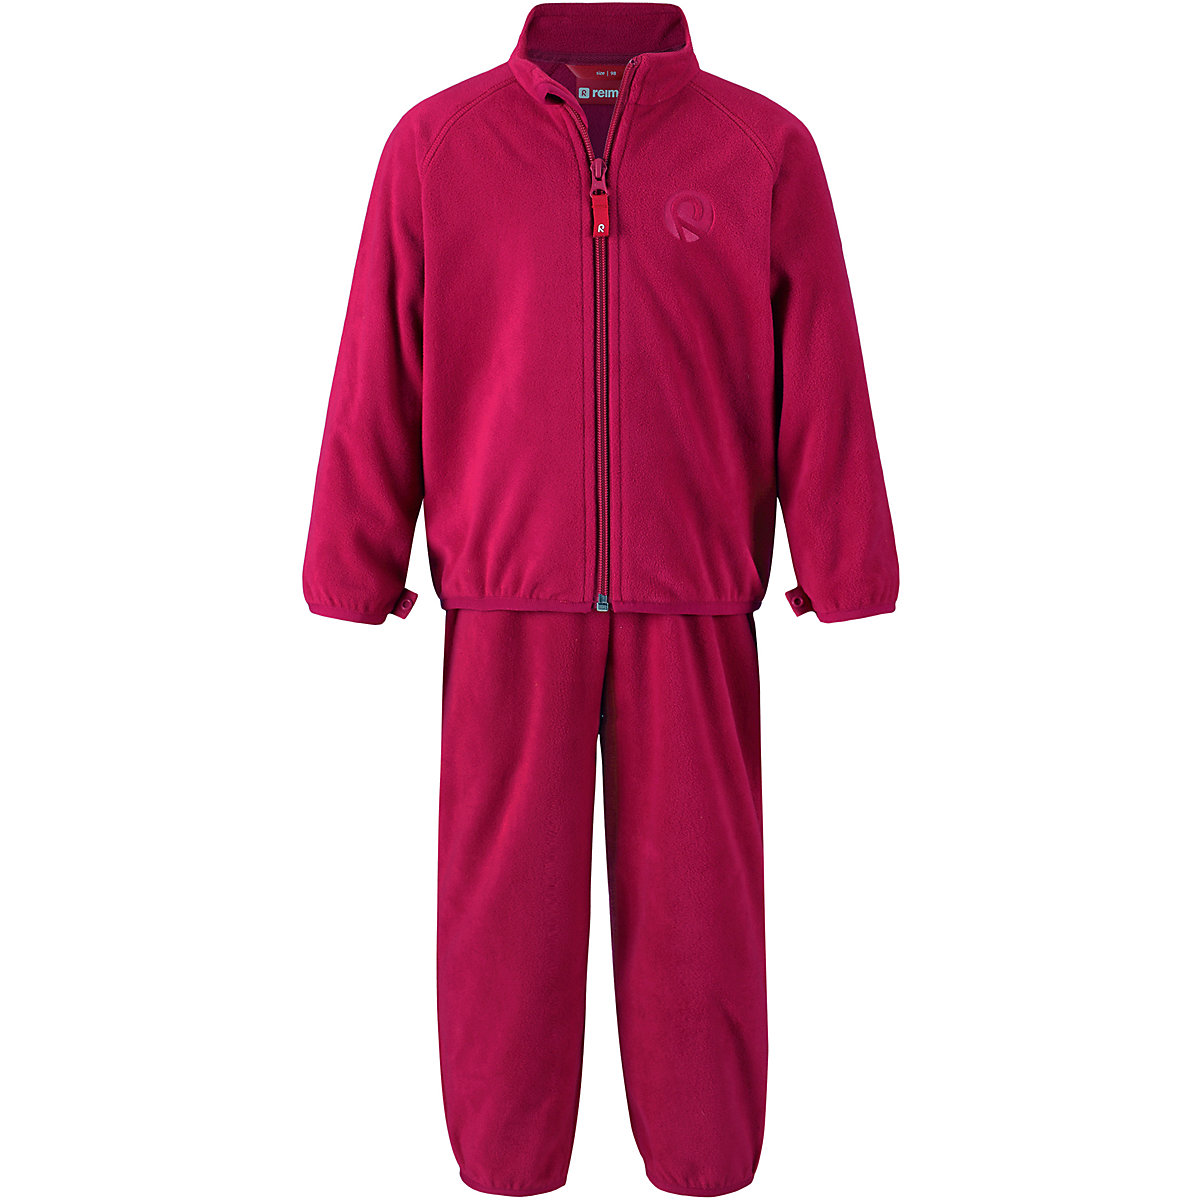 REIMA Babys Sets 8688967 for girls Polyester Baby Kit girl Jacket and pants